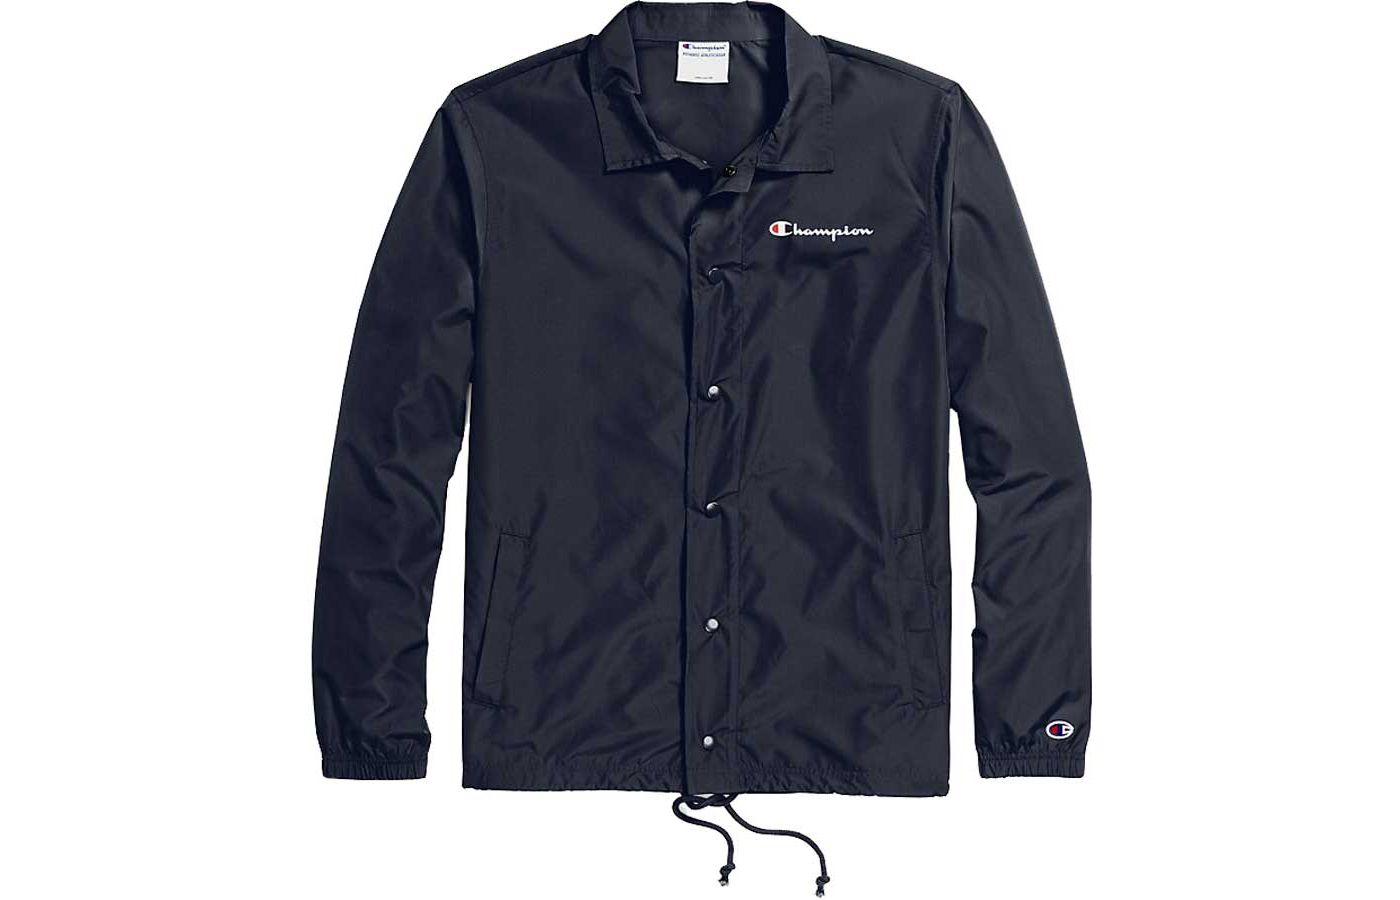 Champion Men's Classic Coaches Jacket